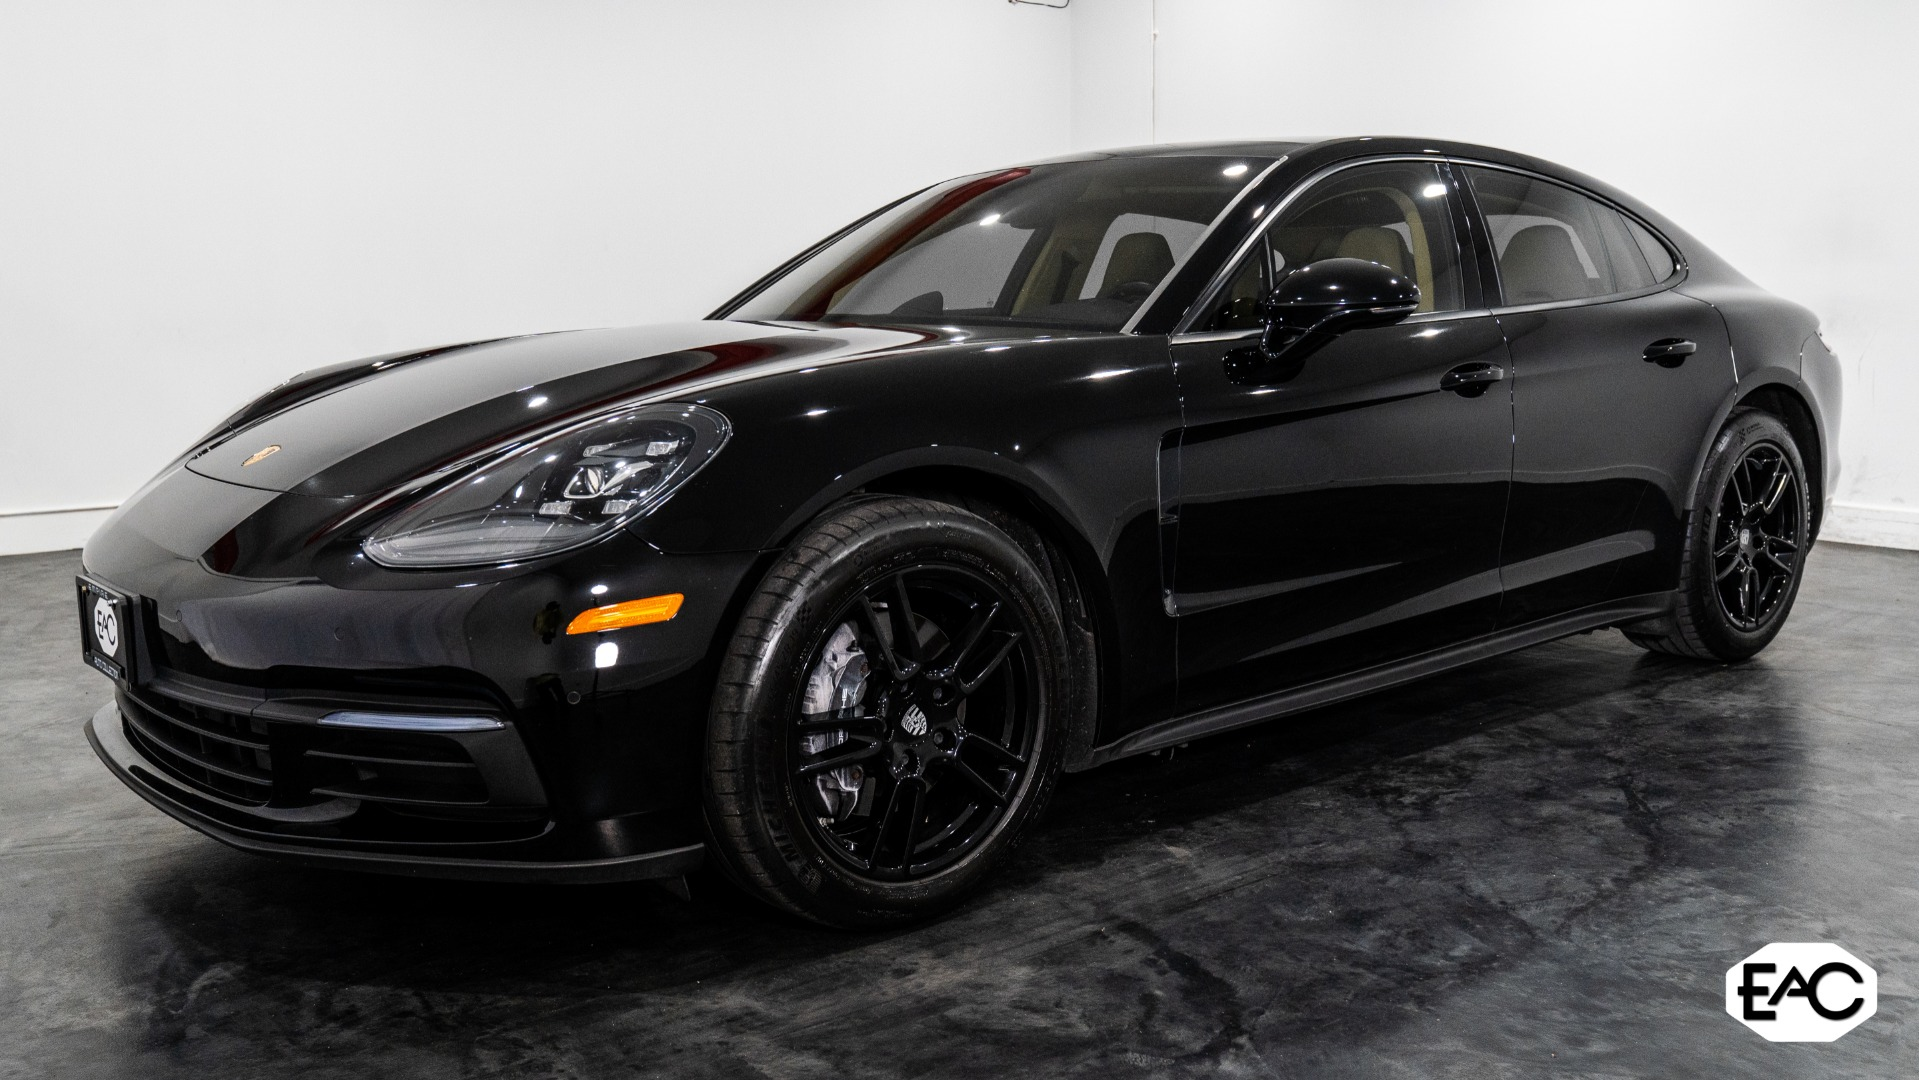 Used 2017 Porsche Panamera 4 for sale $65,990 at Empire Auto Collection in Warren MI 48091 1